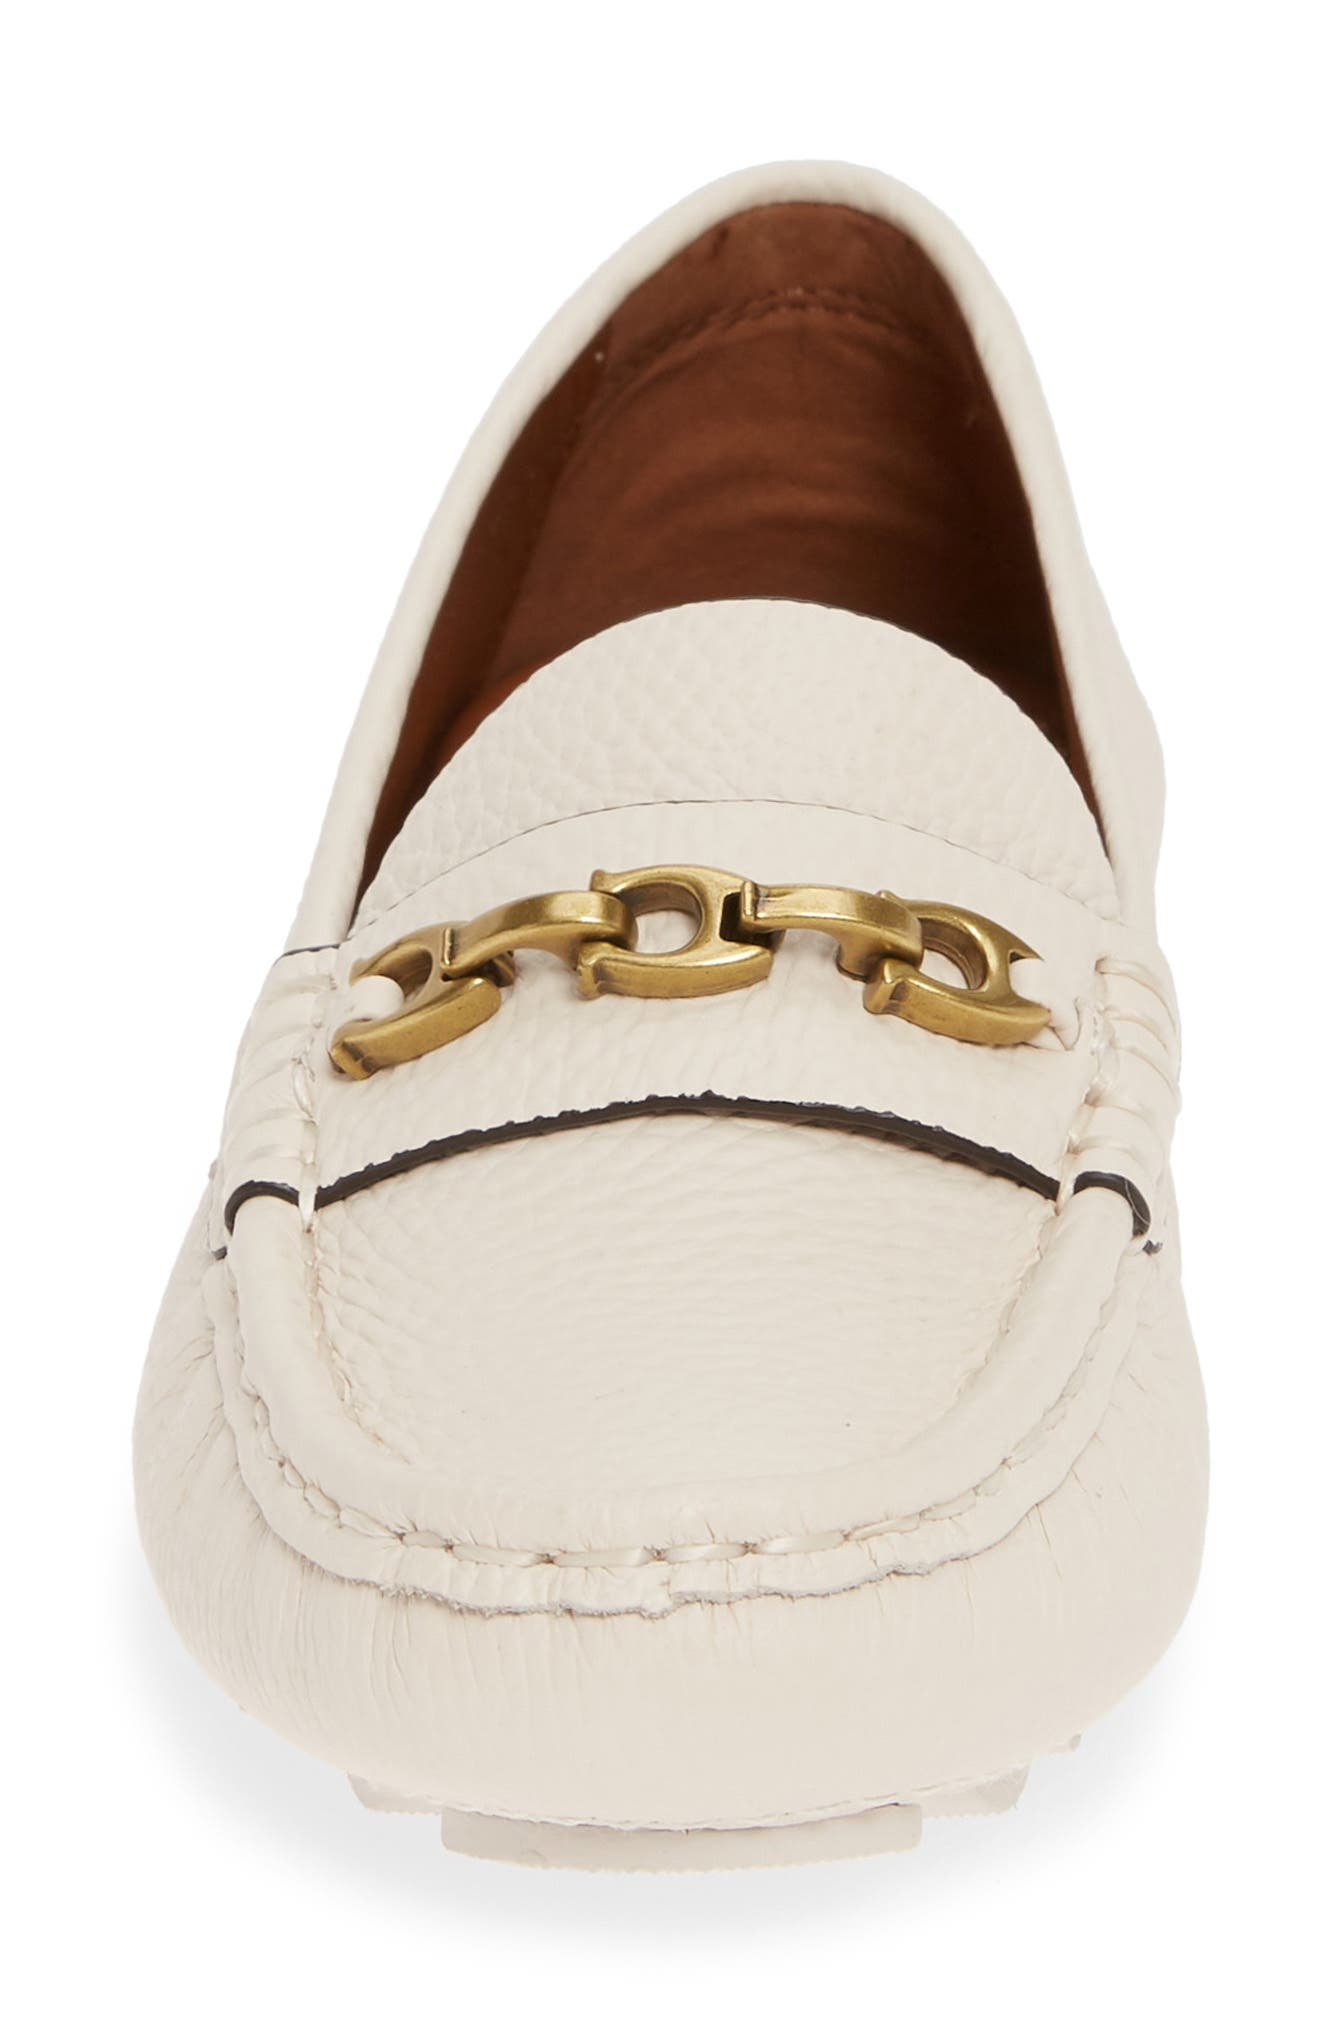 COACH,                             Crosby Driver Loafer,                             Alternate thumbnail 4, color,                             CHALK LEATHER